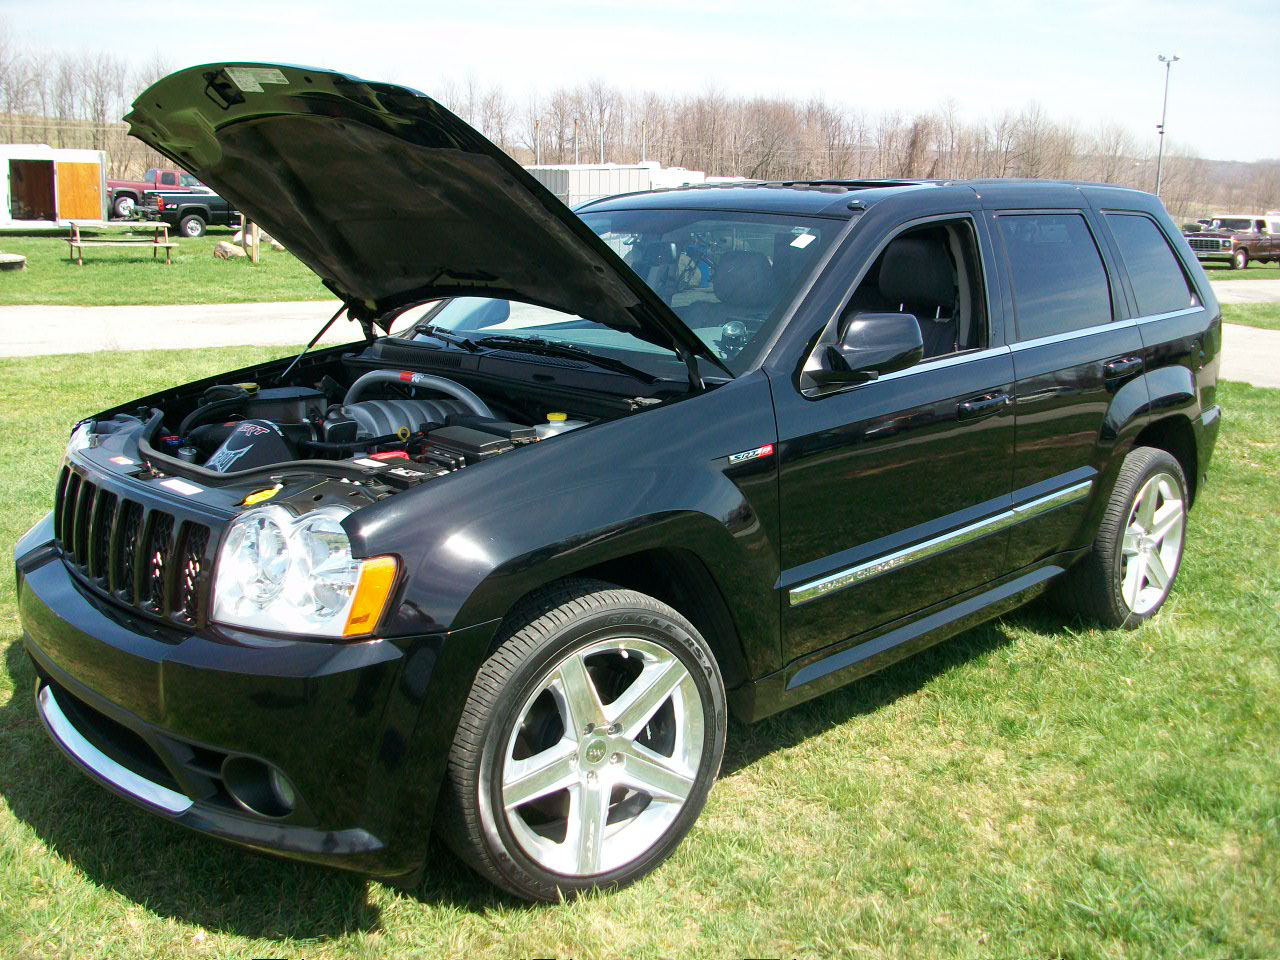 2006 jeep grand cherokee srt8 1 4 mile drag racing timeslip specs 0 60. Black Bedroom Furniture Sets. Home Design Ideas